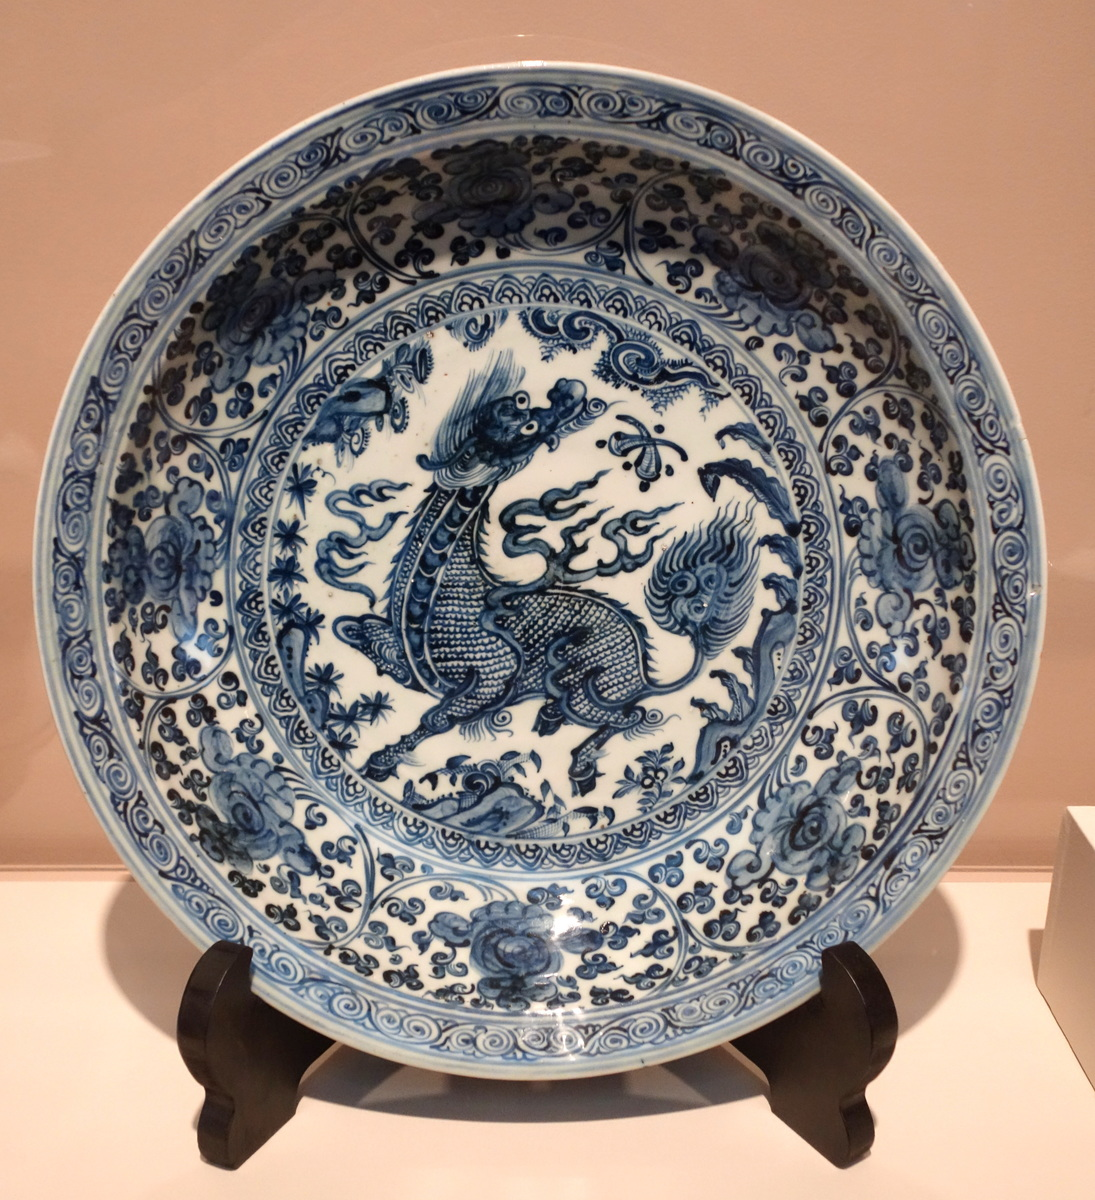 Standard large decorated dish  china  ming dynasty  porcelain   chazen museum of art   dsc01647